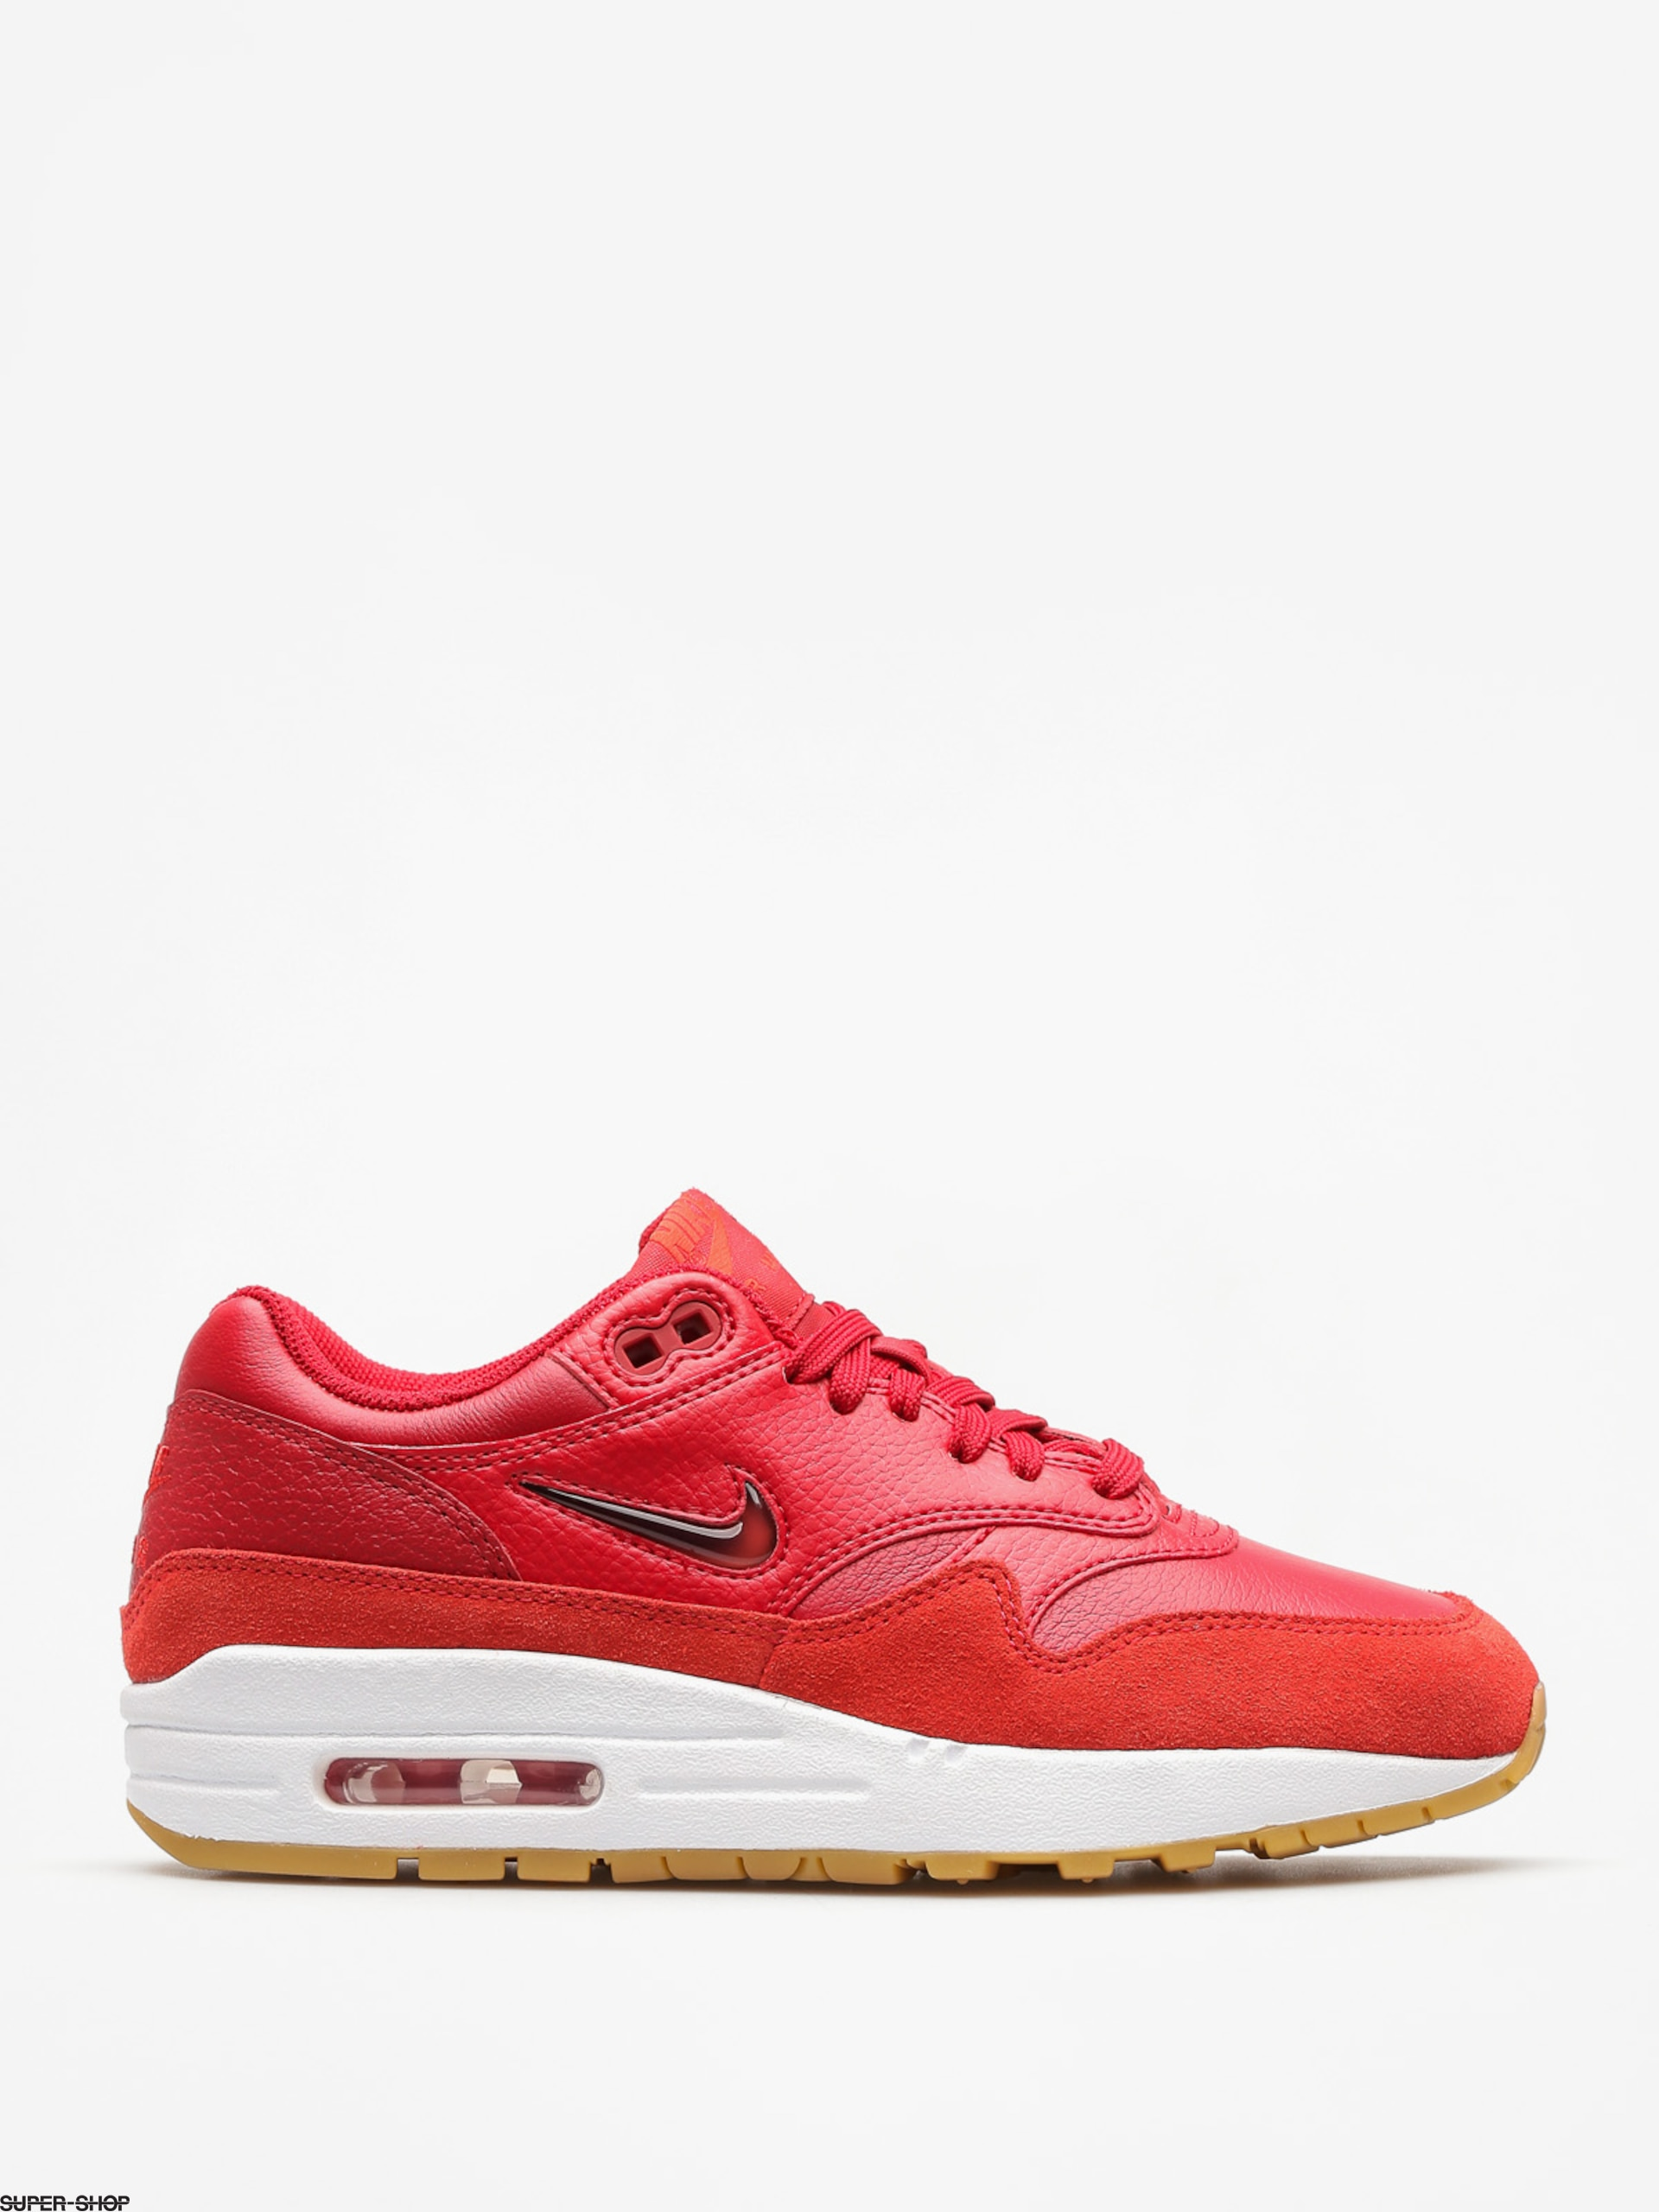 Clínica prima Adviento  Nike Air Max 1 Premium Sc Shoes Wmn (gym red/gym red speed red)